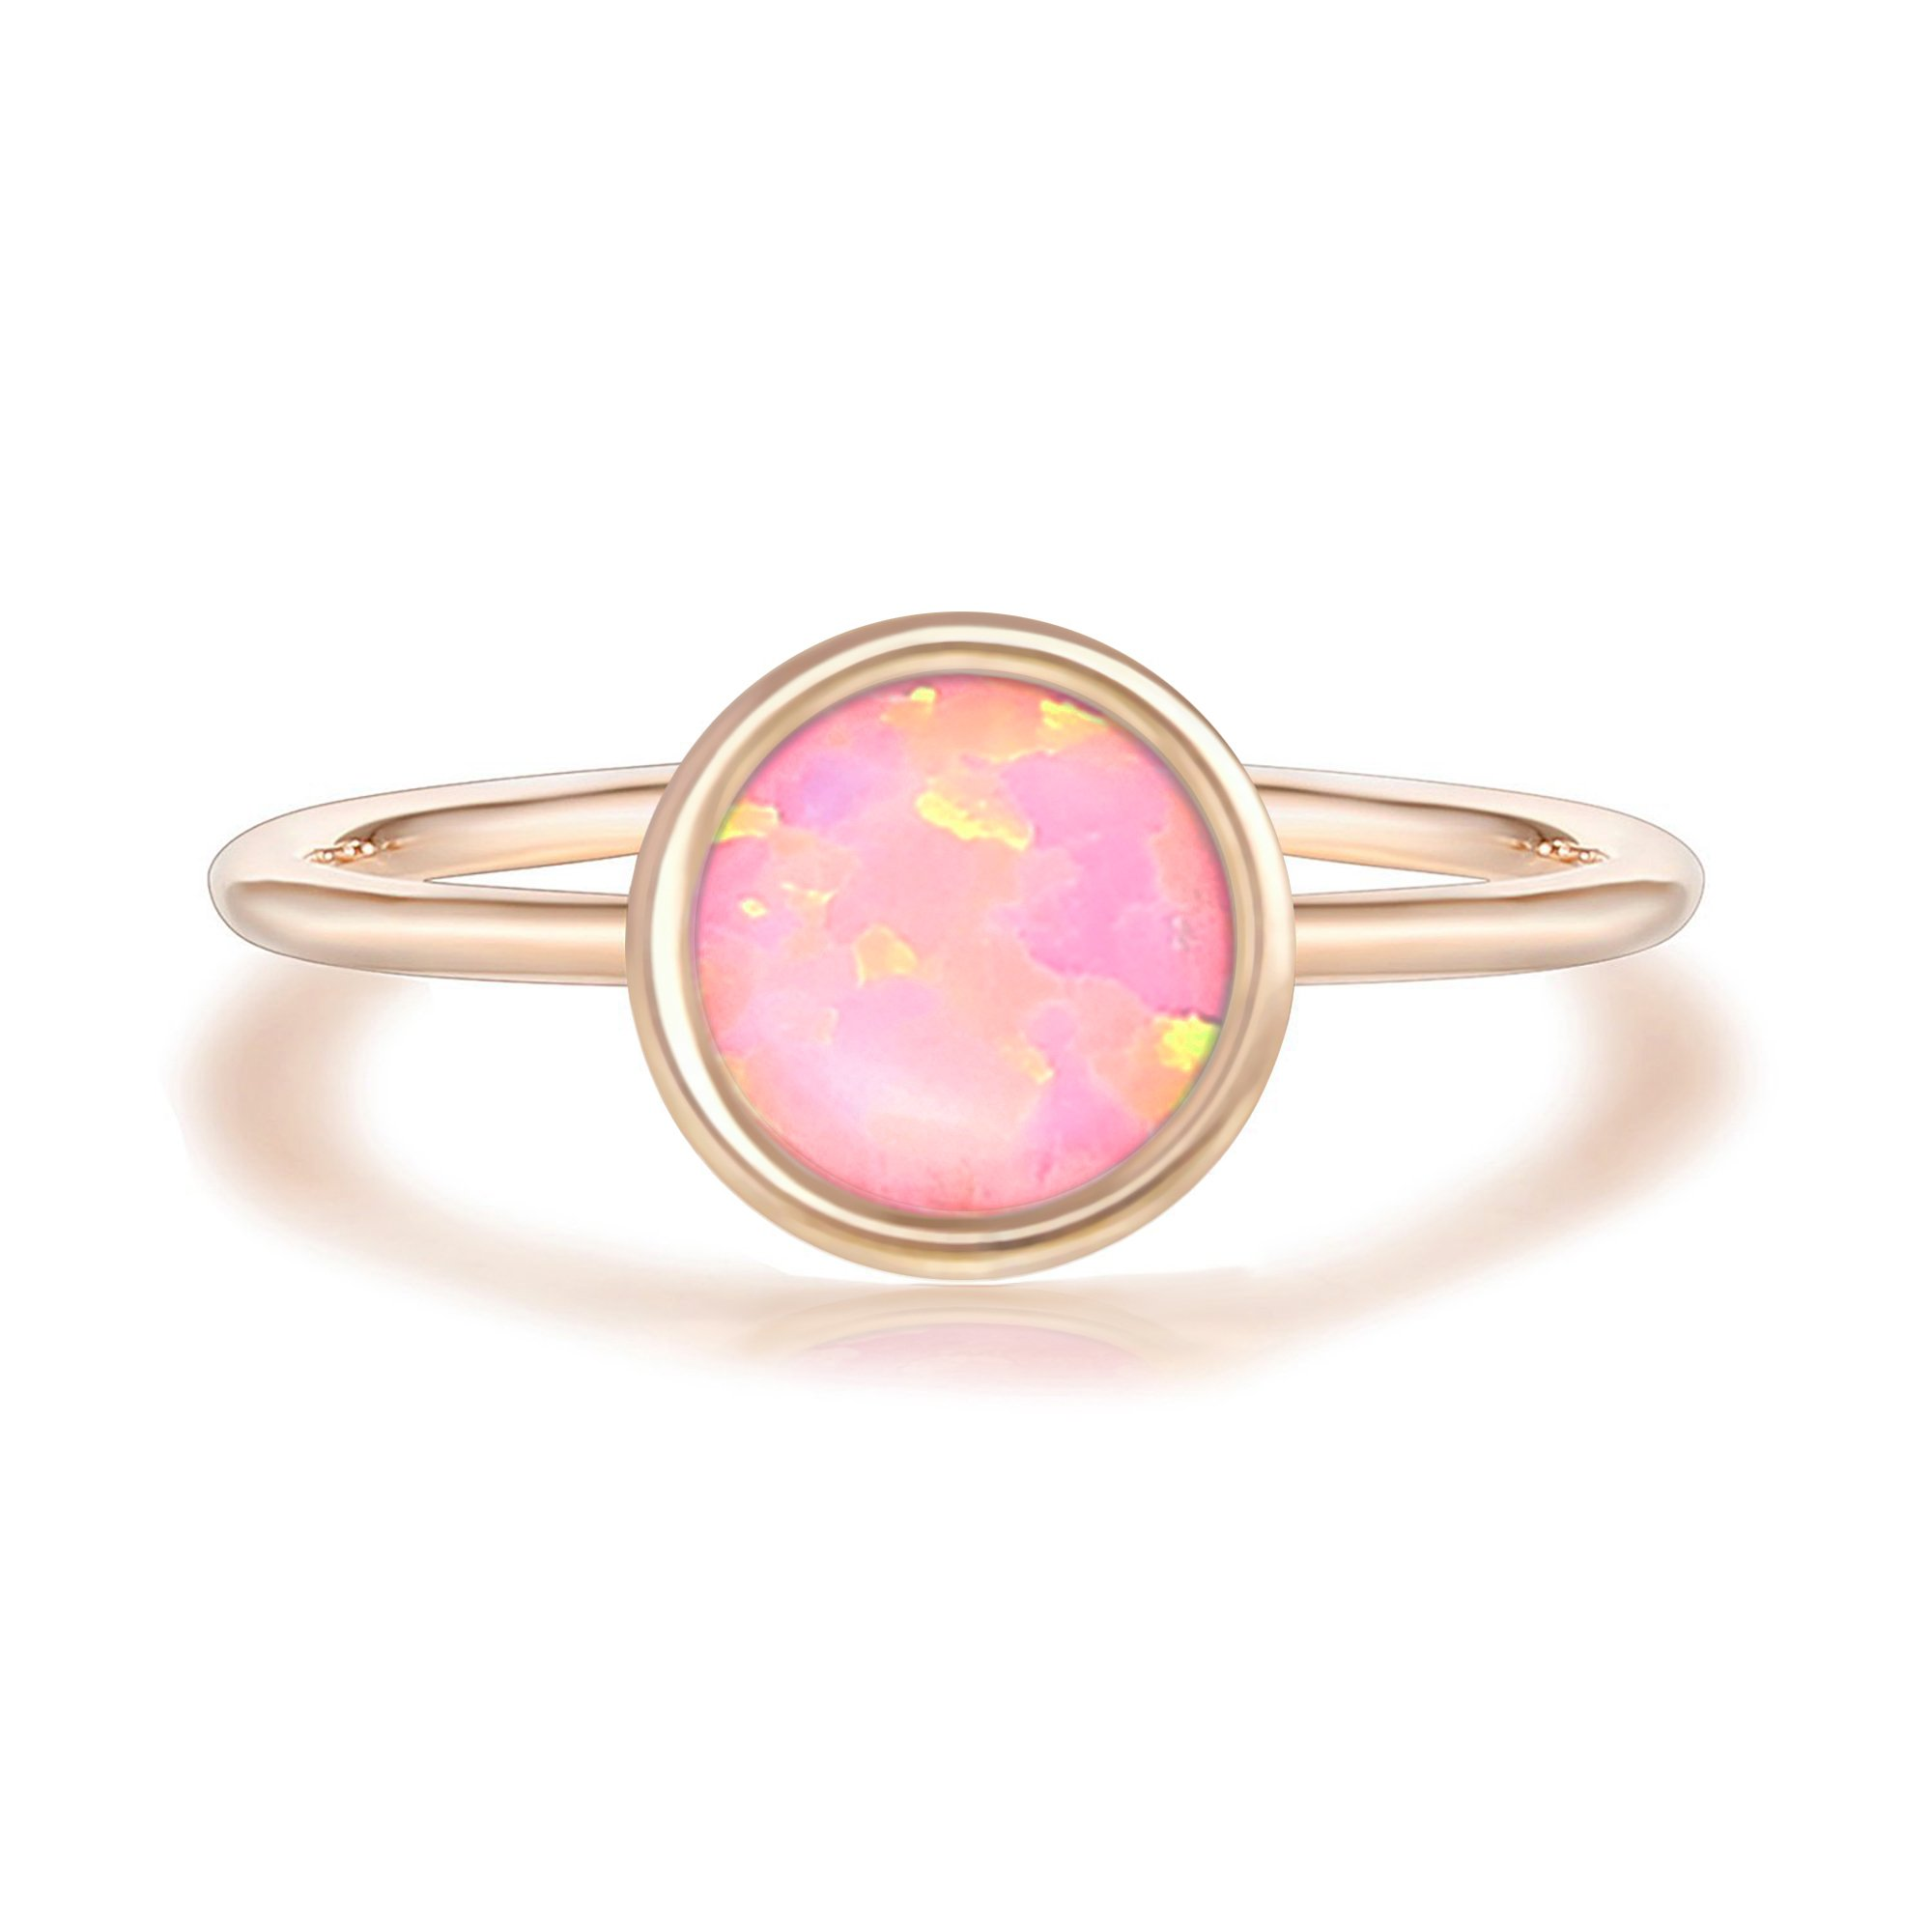 PAVOI 14K Rose Gold Plated Stackable Ring Created White Opal Stacking Ring